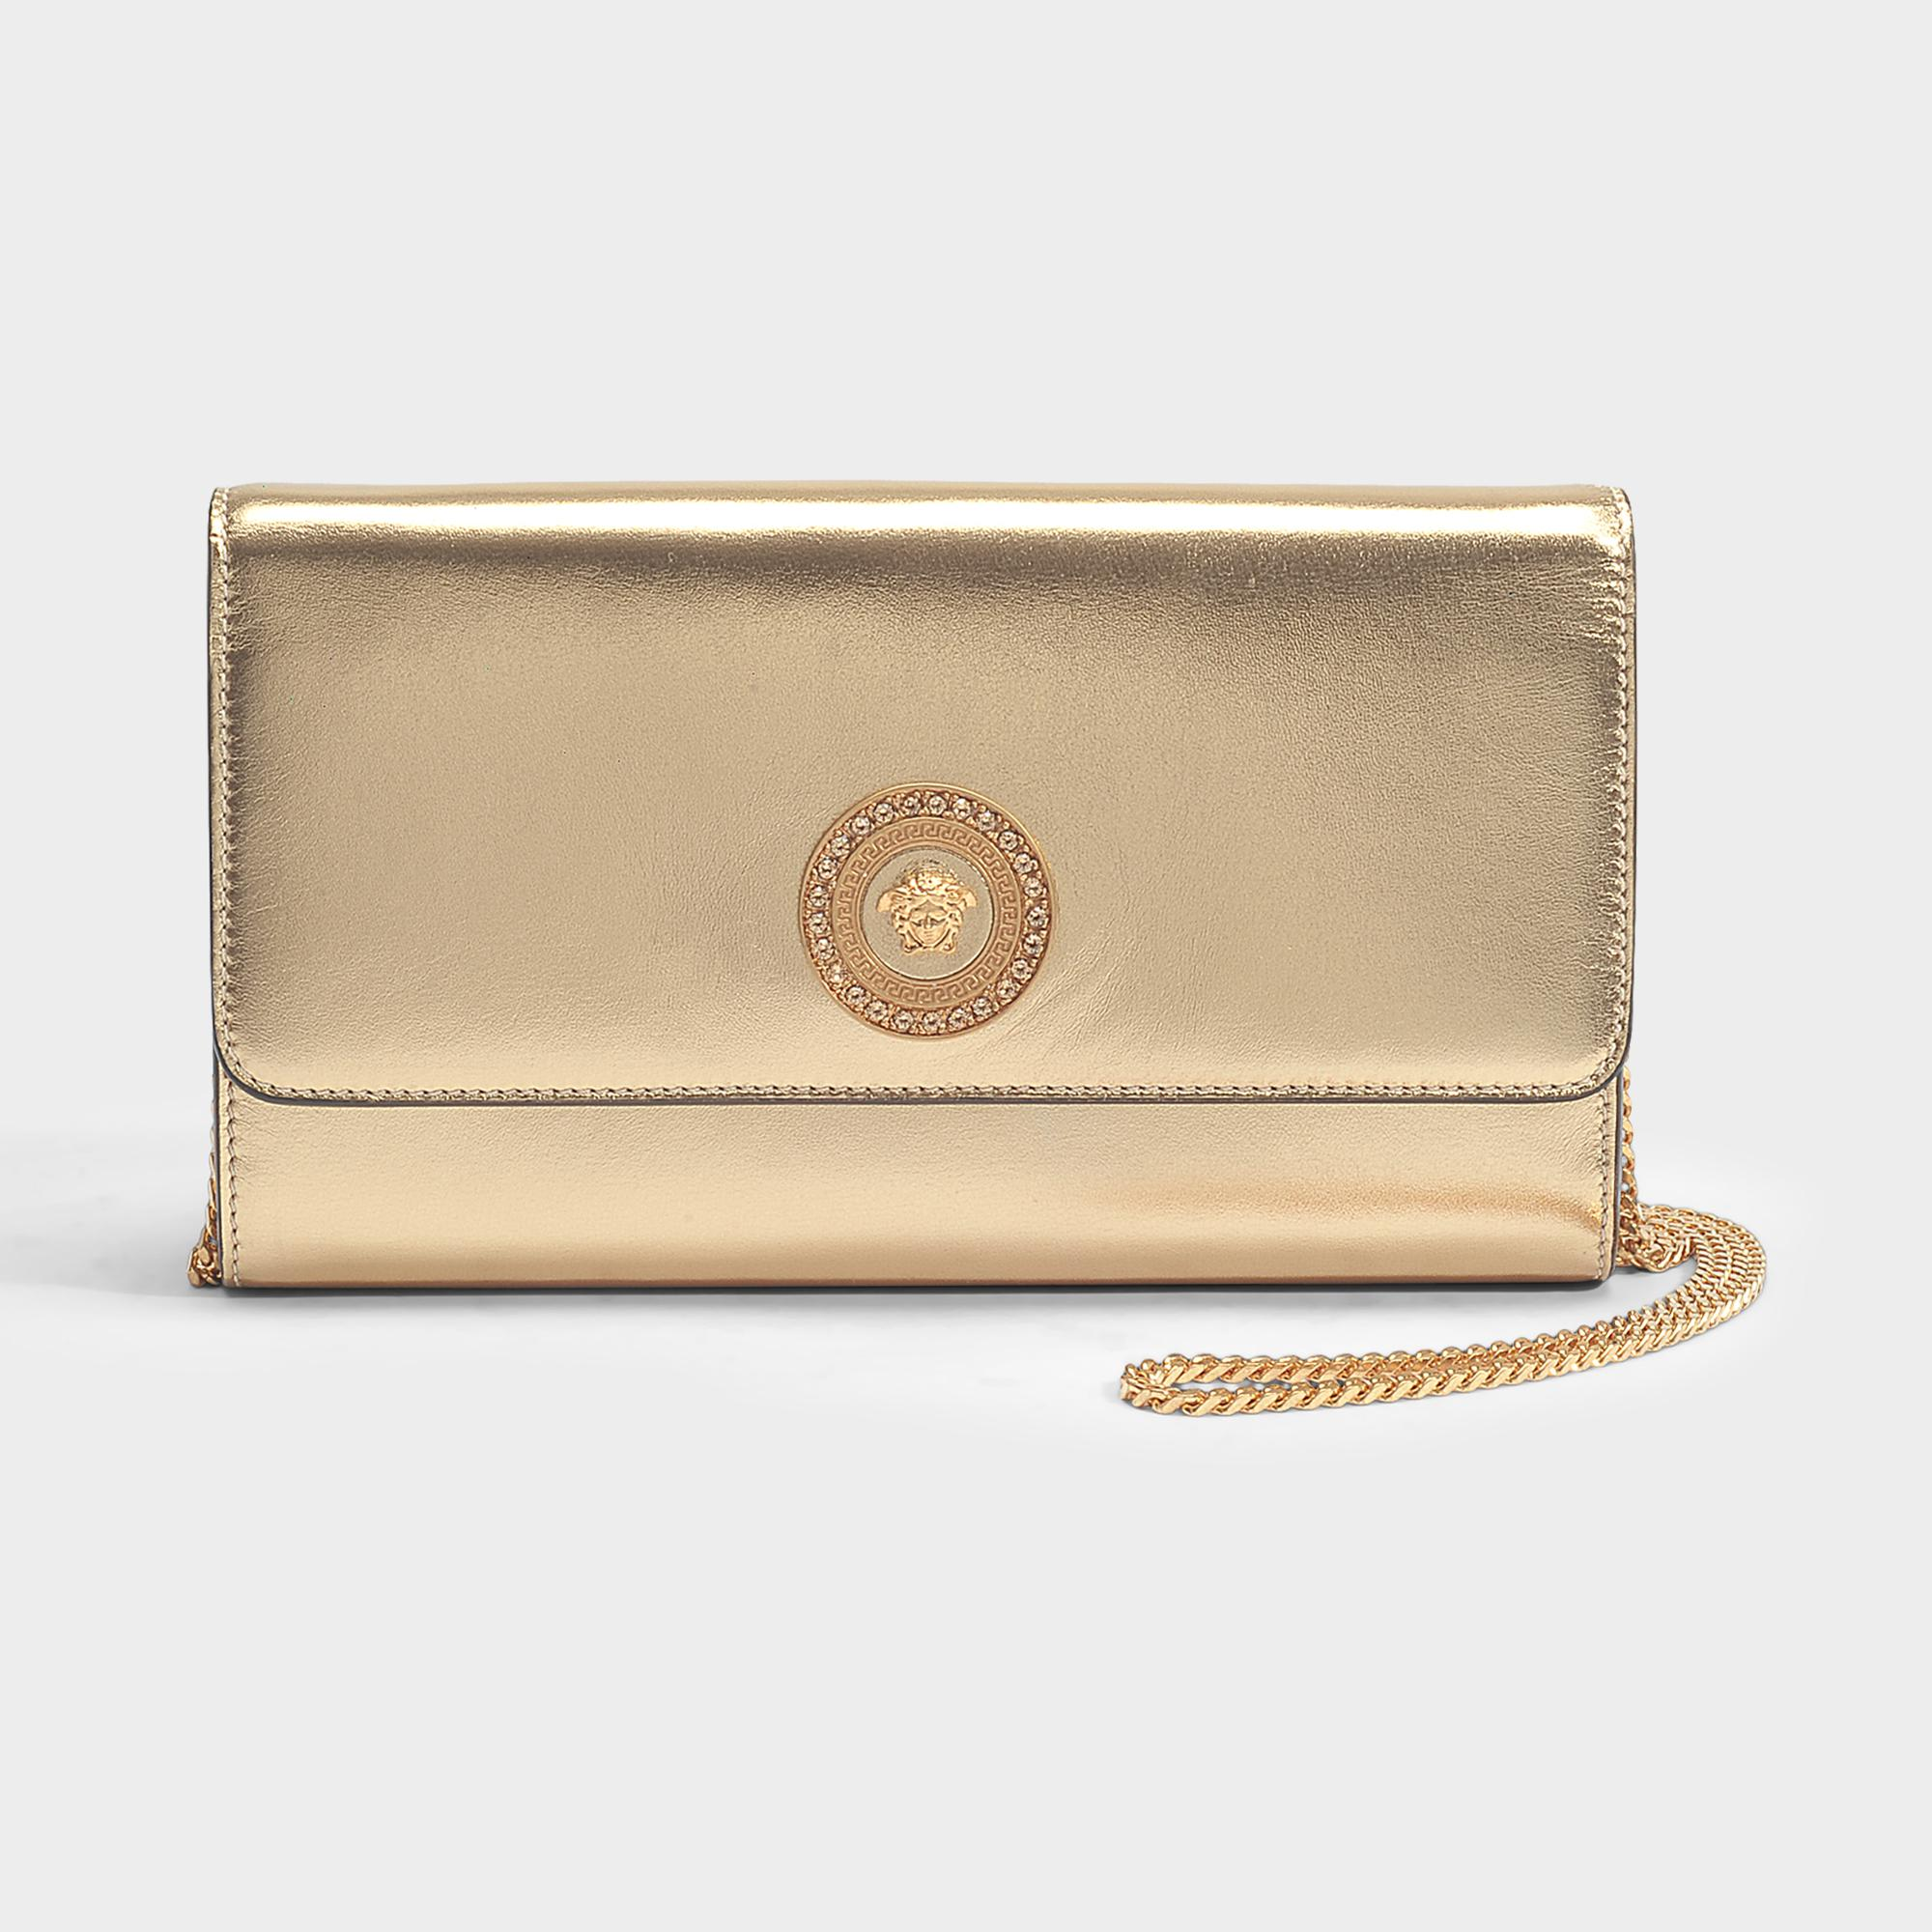 6748a8108f Lyst - Versace Tribute Icon Evening Bag In Gold Nappa Leather